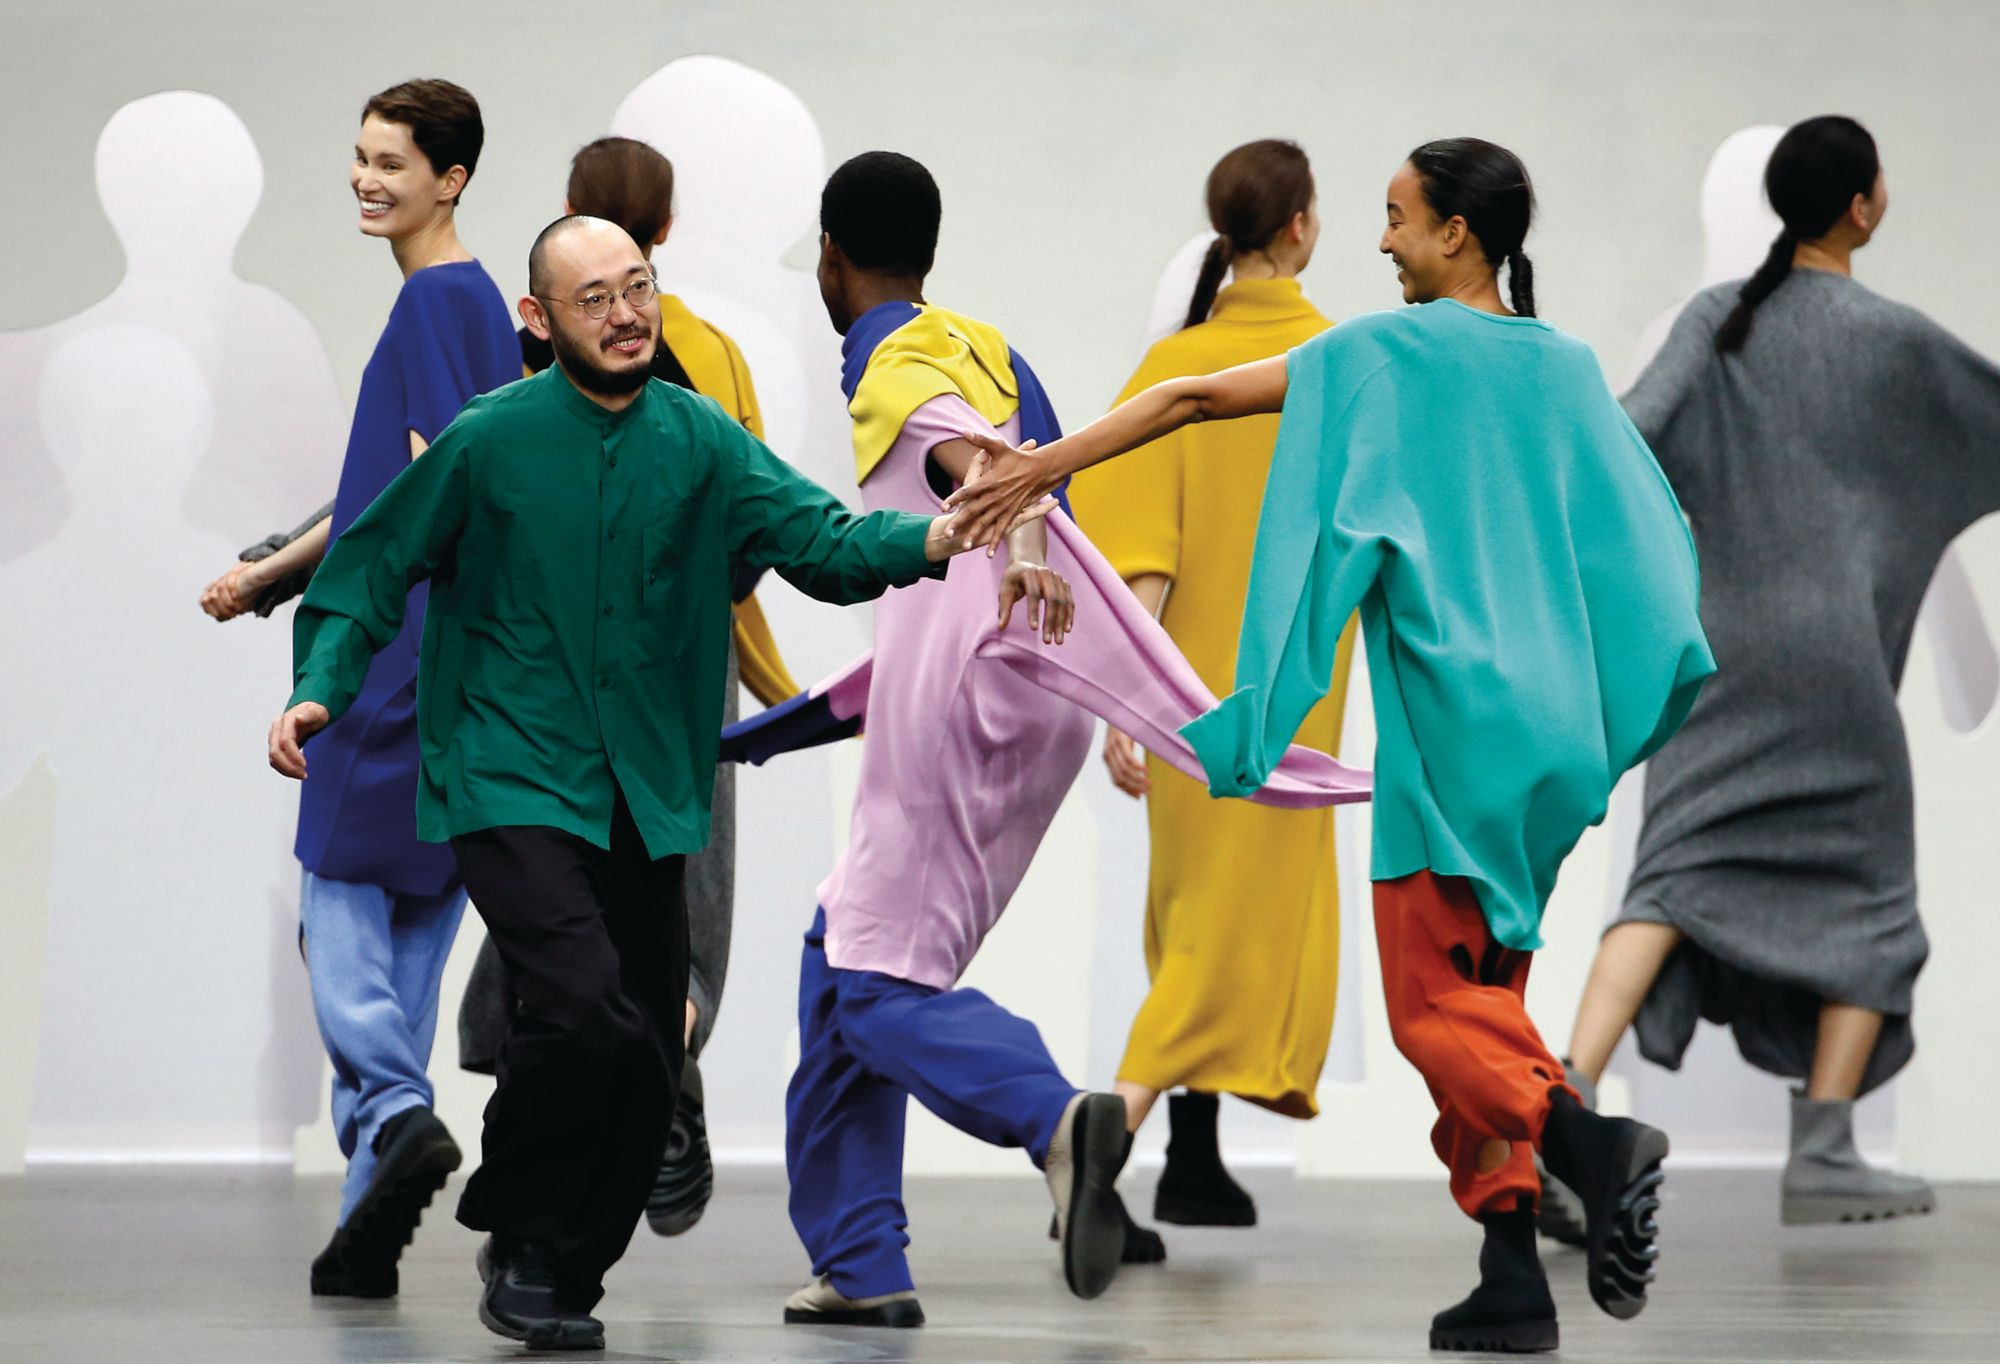 How Satoshi Kondo, New Head Designer Of Issey Miyake, Steers The Brand In A New Direction